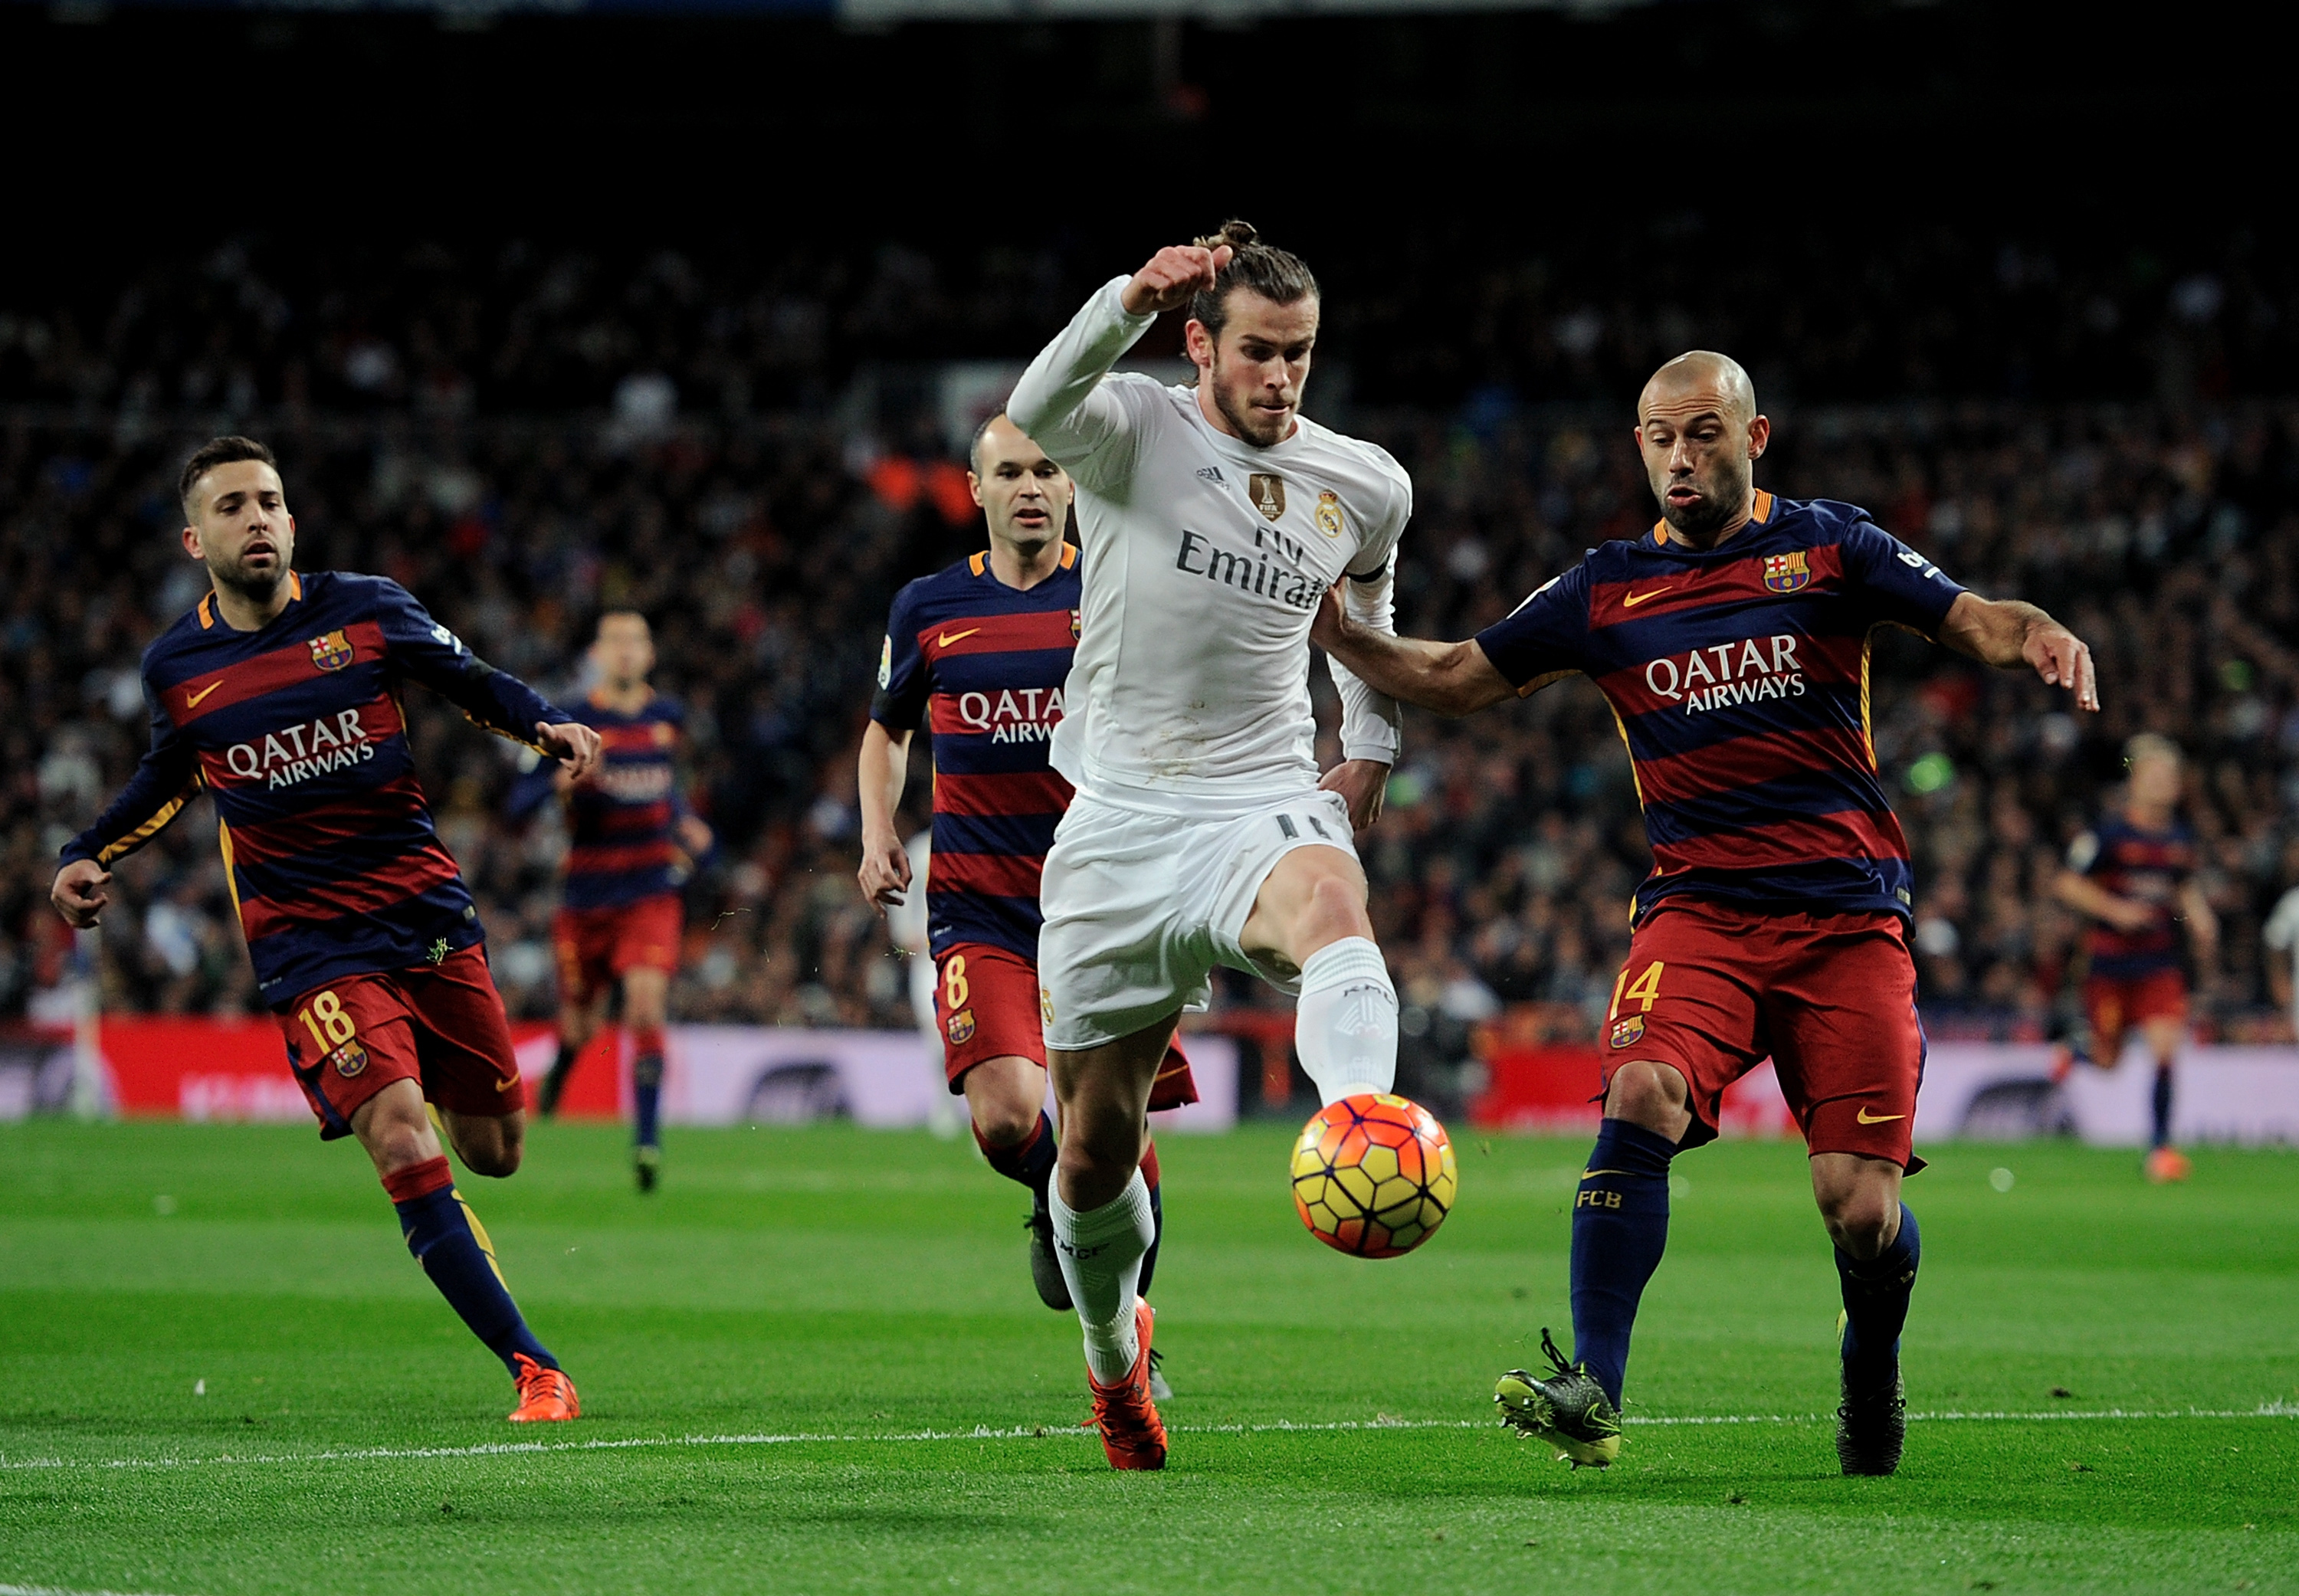 Top sides like Real Madrid and Barcelona want in on the big TV money action (Getty Images)